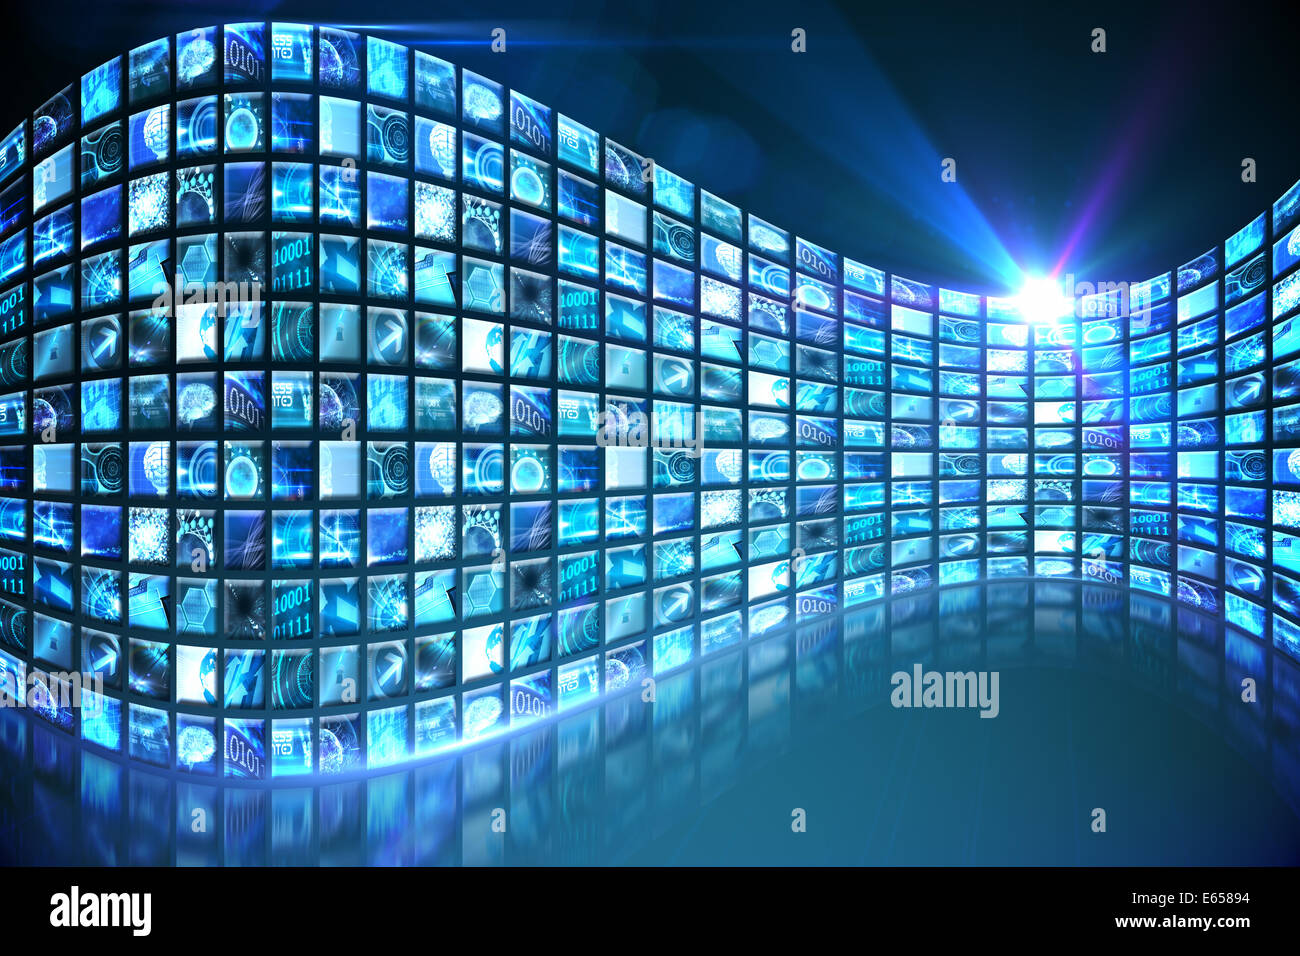 Curve of digital screens in blue - Stock Image